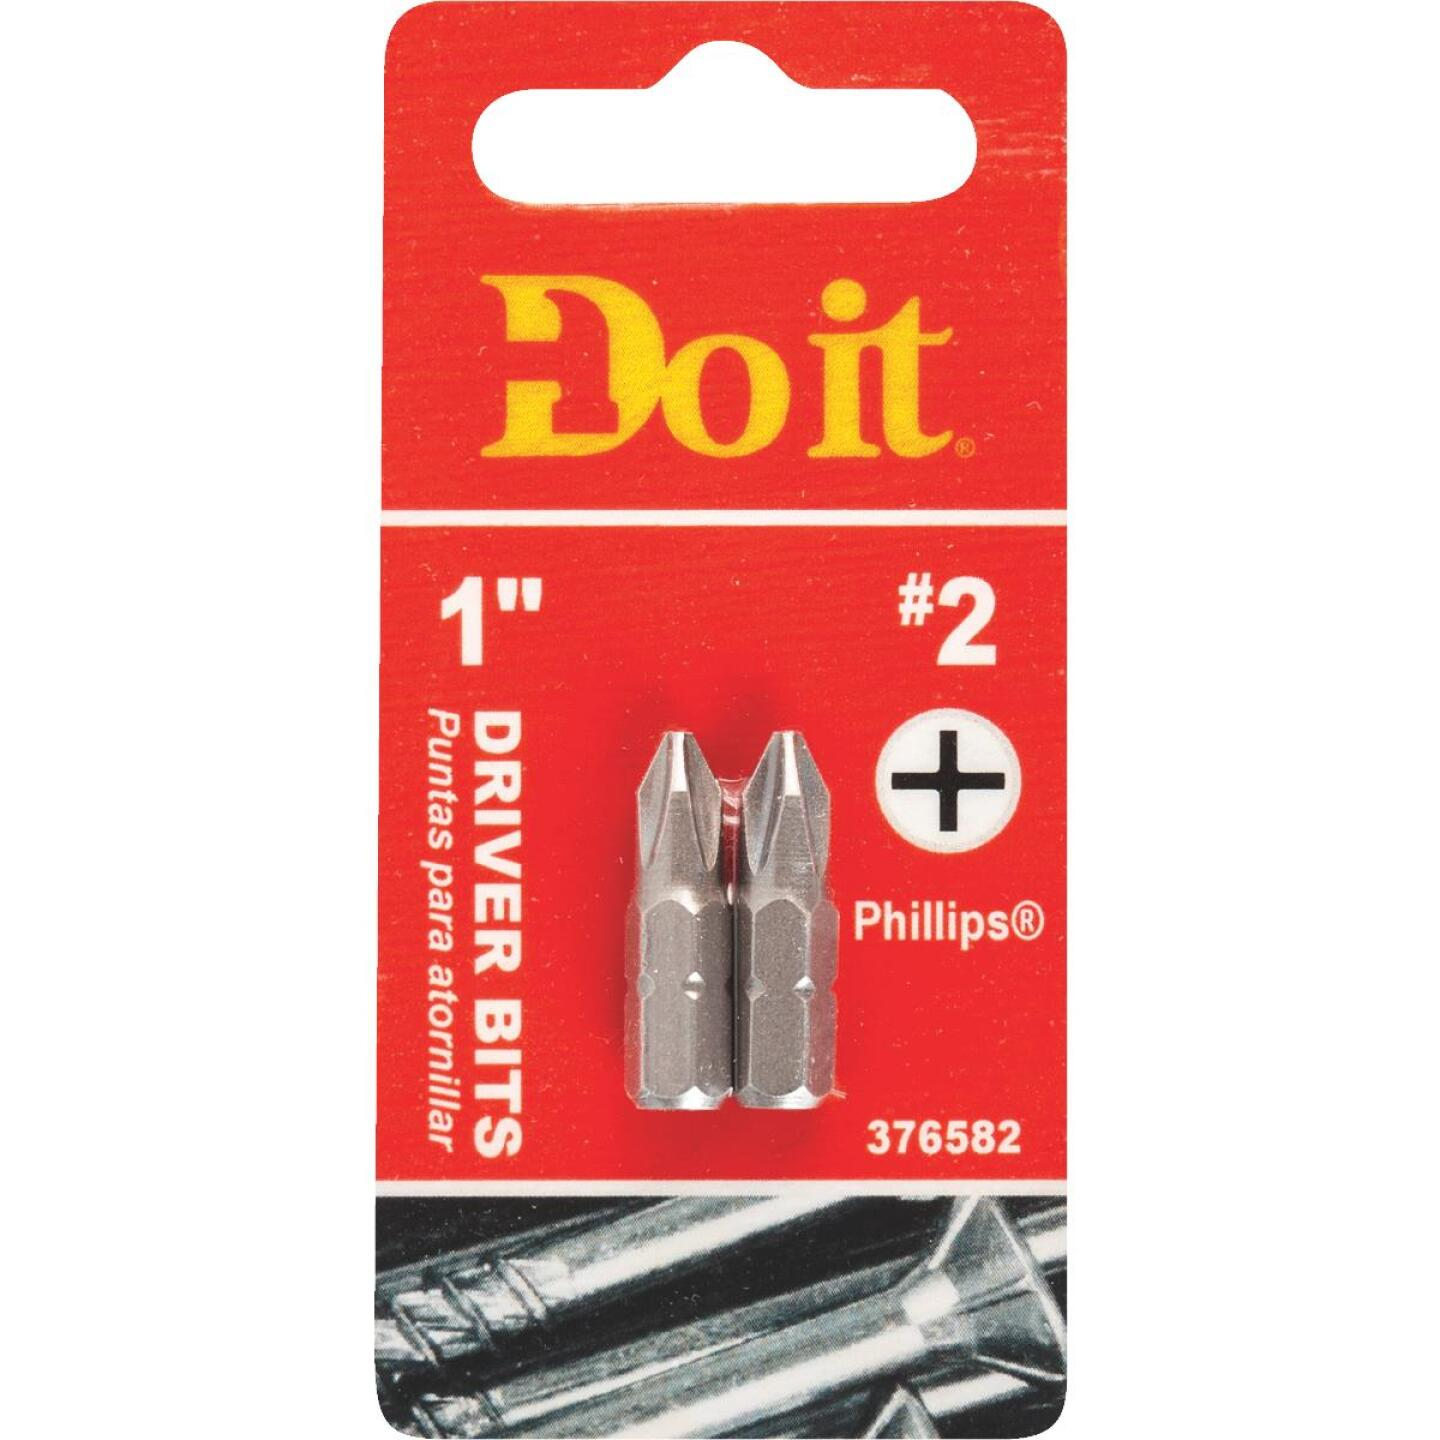 Do it #2 Phillips 1 In. Insert Screwdriver Bit (2-Pack) Image 1